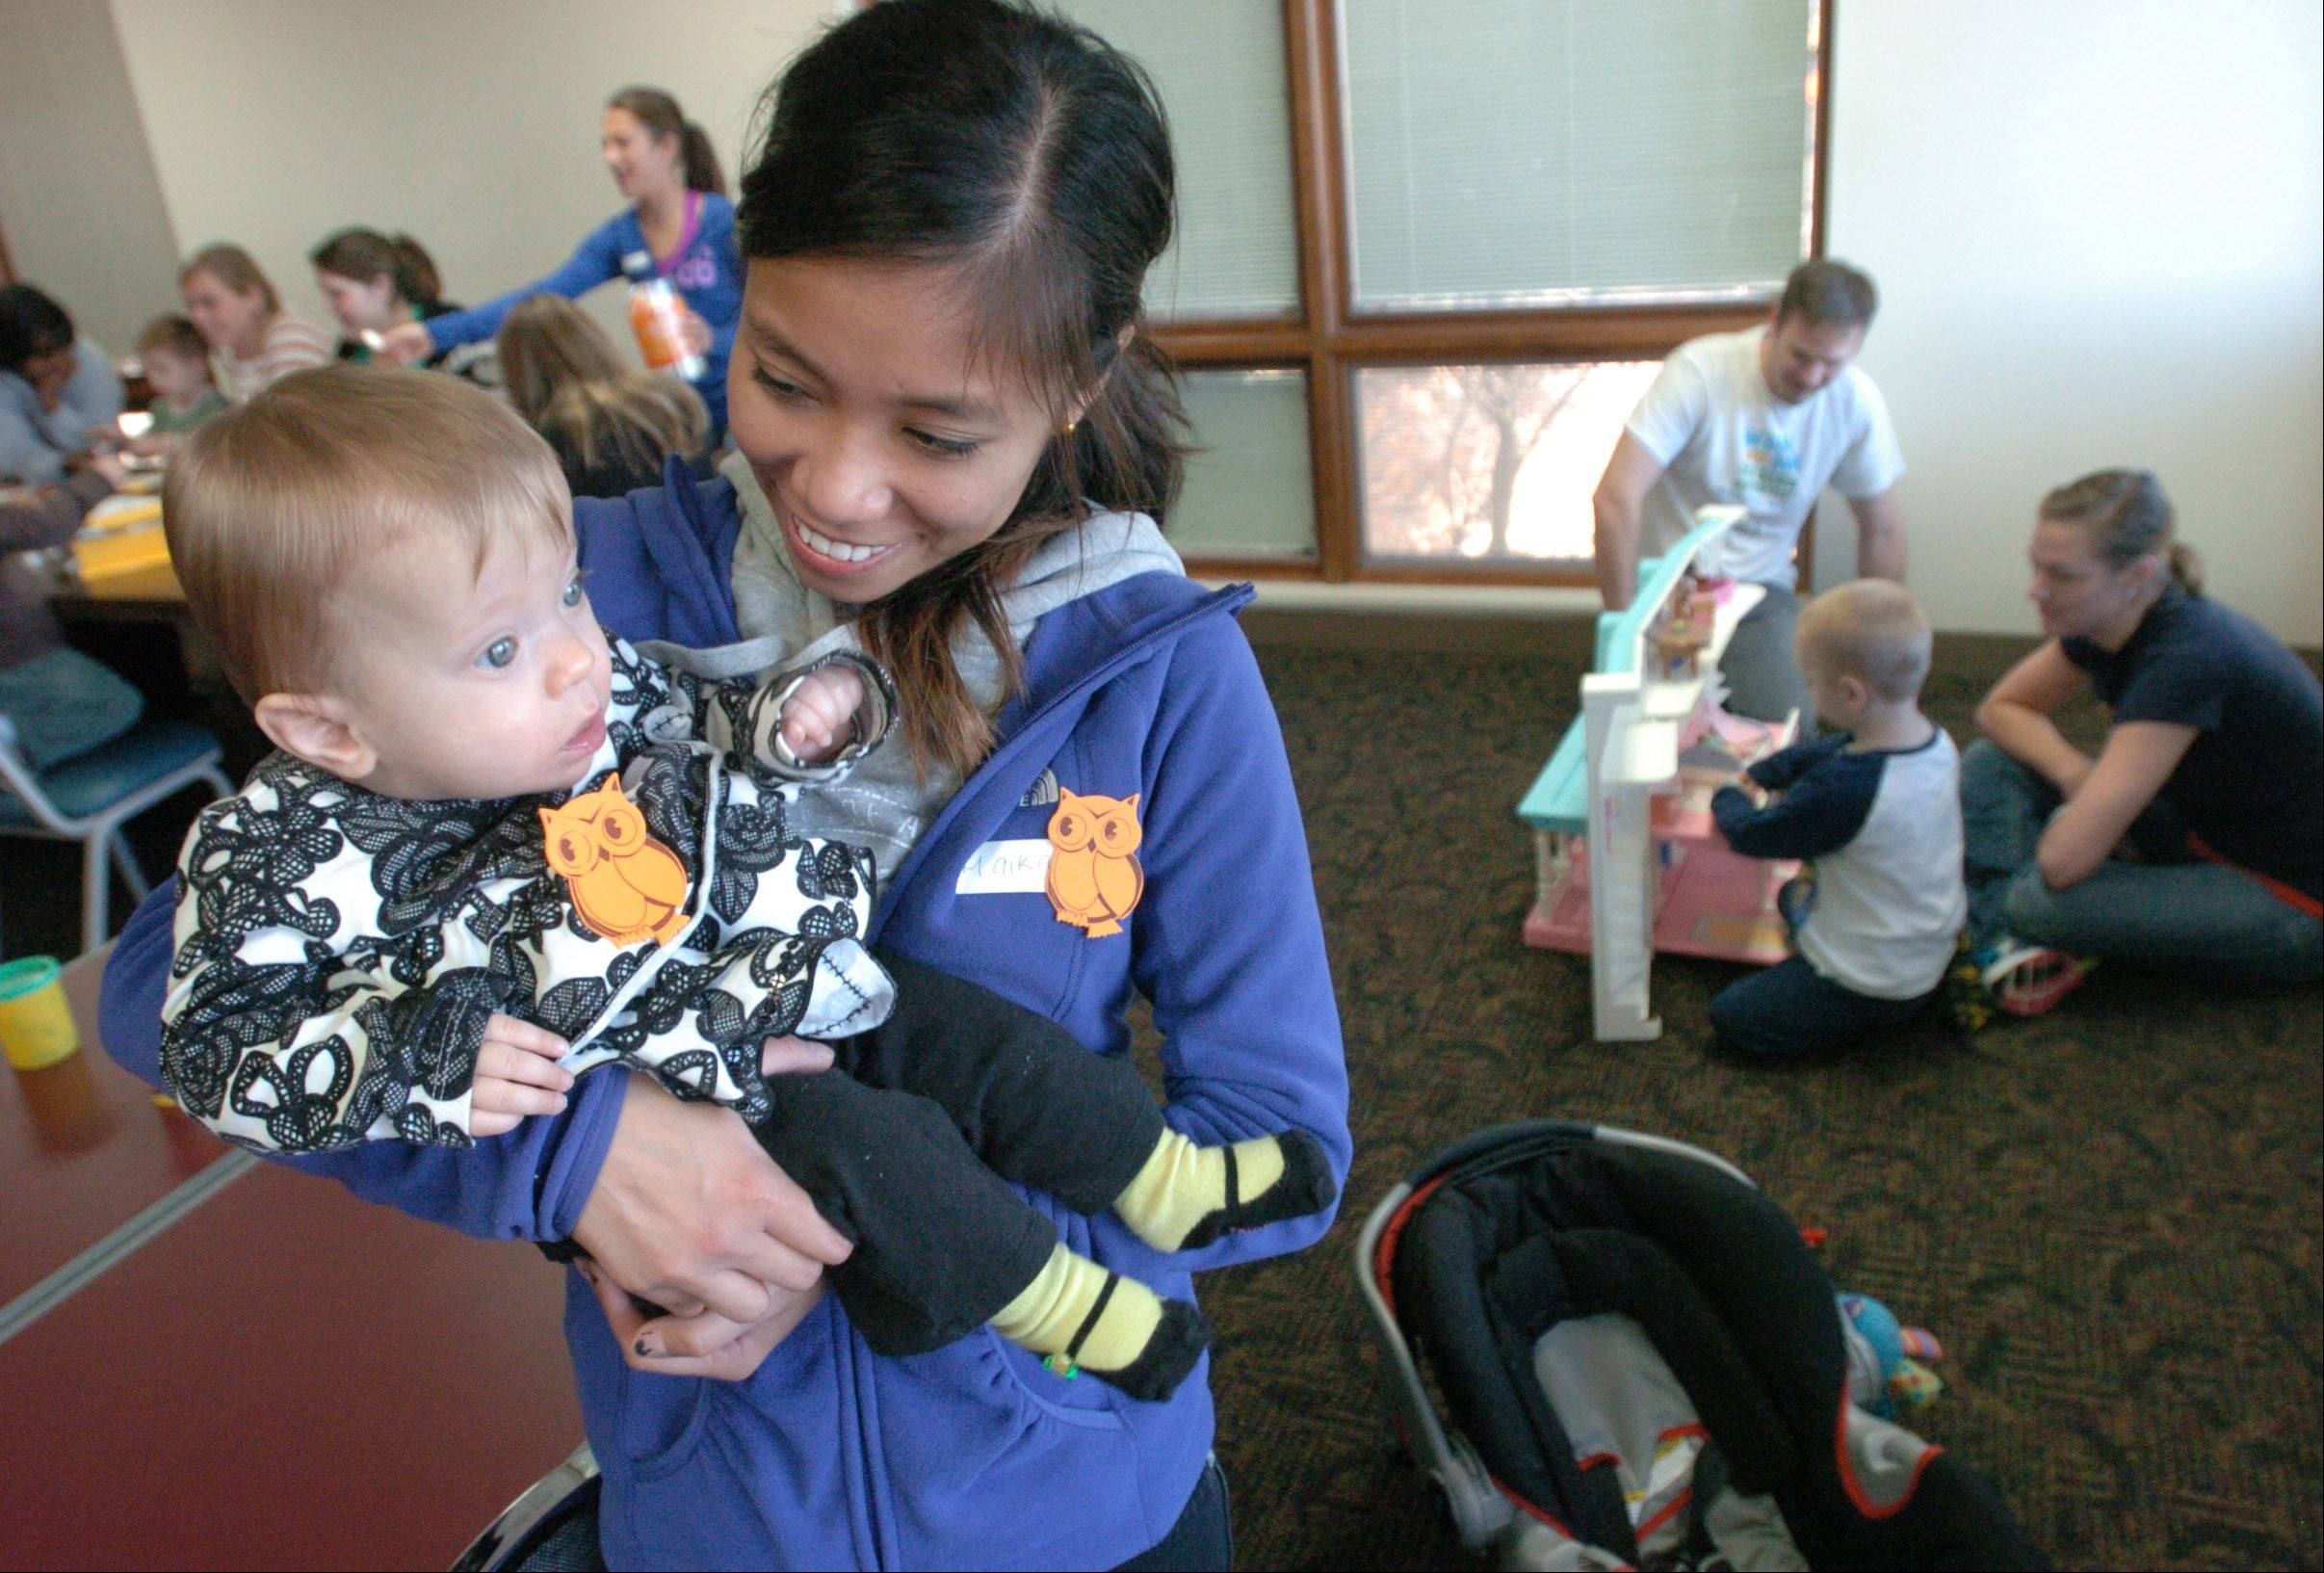 Maika Manalastas holds 10-month-old Lilly Myra of Glendale Heights during DuPage County's new Take a Break in the Afternoon program sponsored by Clearbrook, an Arlington Heights nonprofit organization that serves children and adults with intellectual and developmental disabilities.